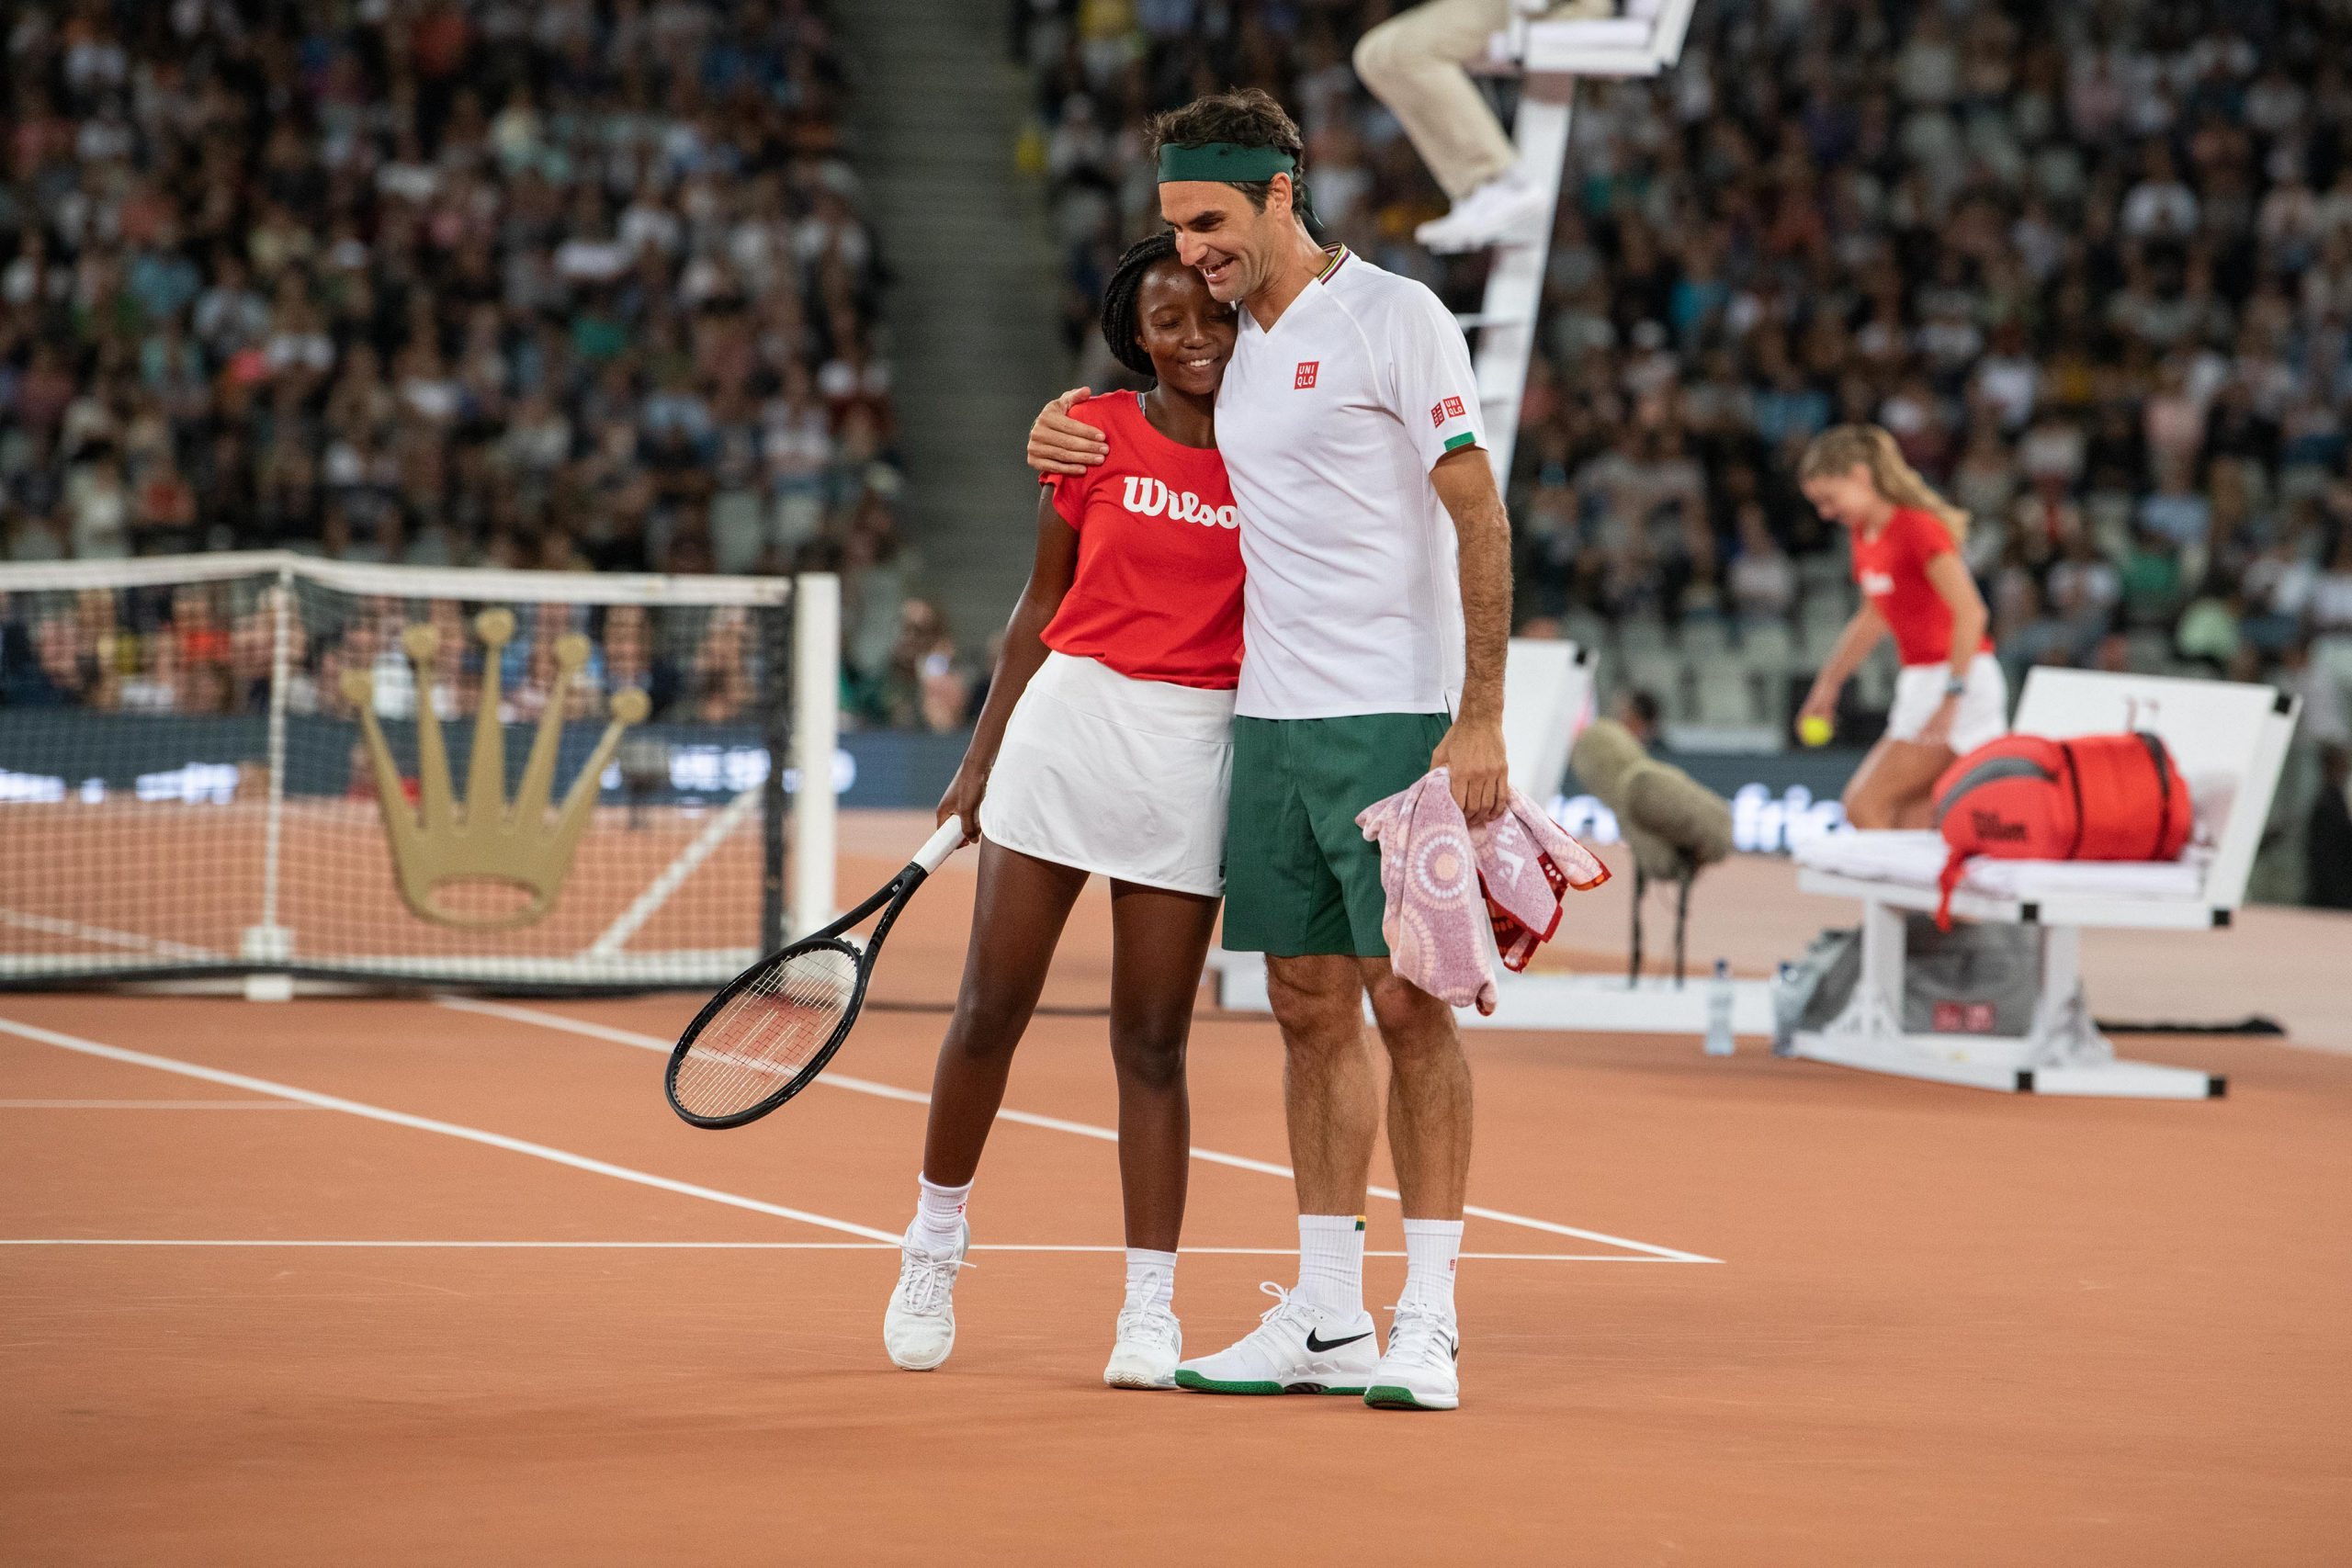 7 February 2020: Roger Federer hugs a ball girl who played a point on his behalf during the Match in Africa.